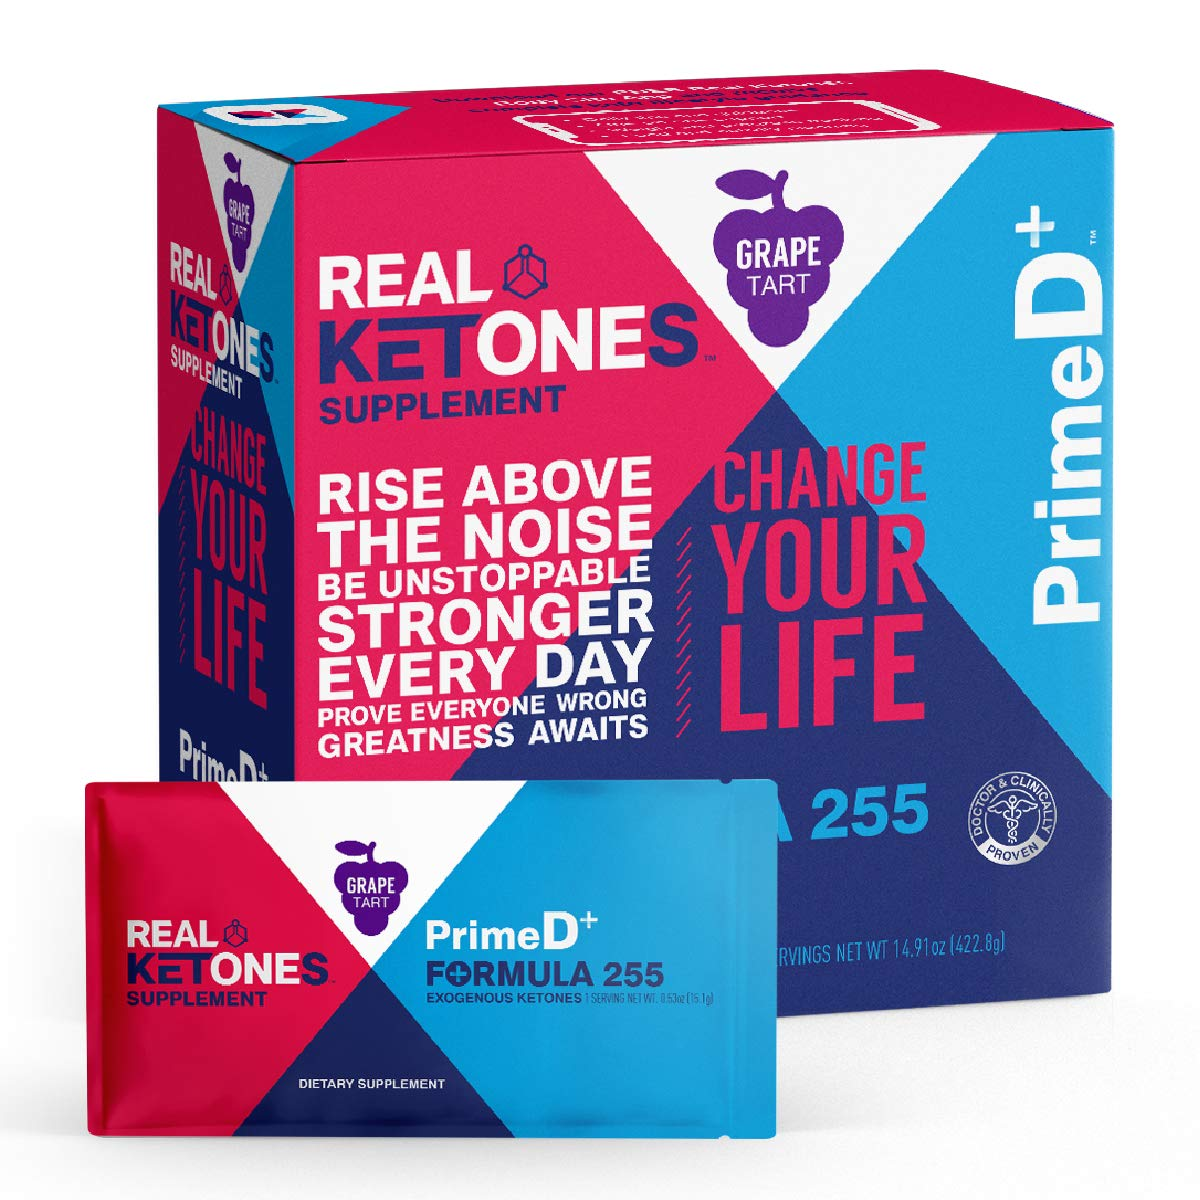 Real Ketones - Prime D+ Grape Tart Exogenous Ketone Supplement with BHB and MCT Combo for Ketone Boost, Energy and Focus